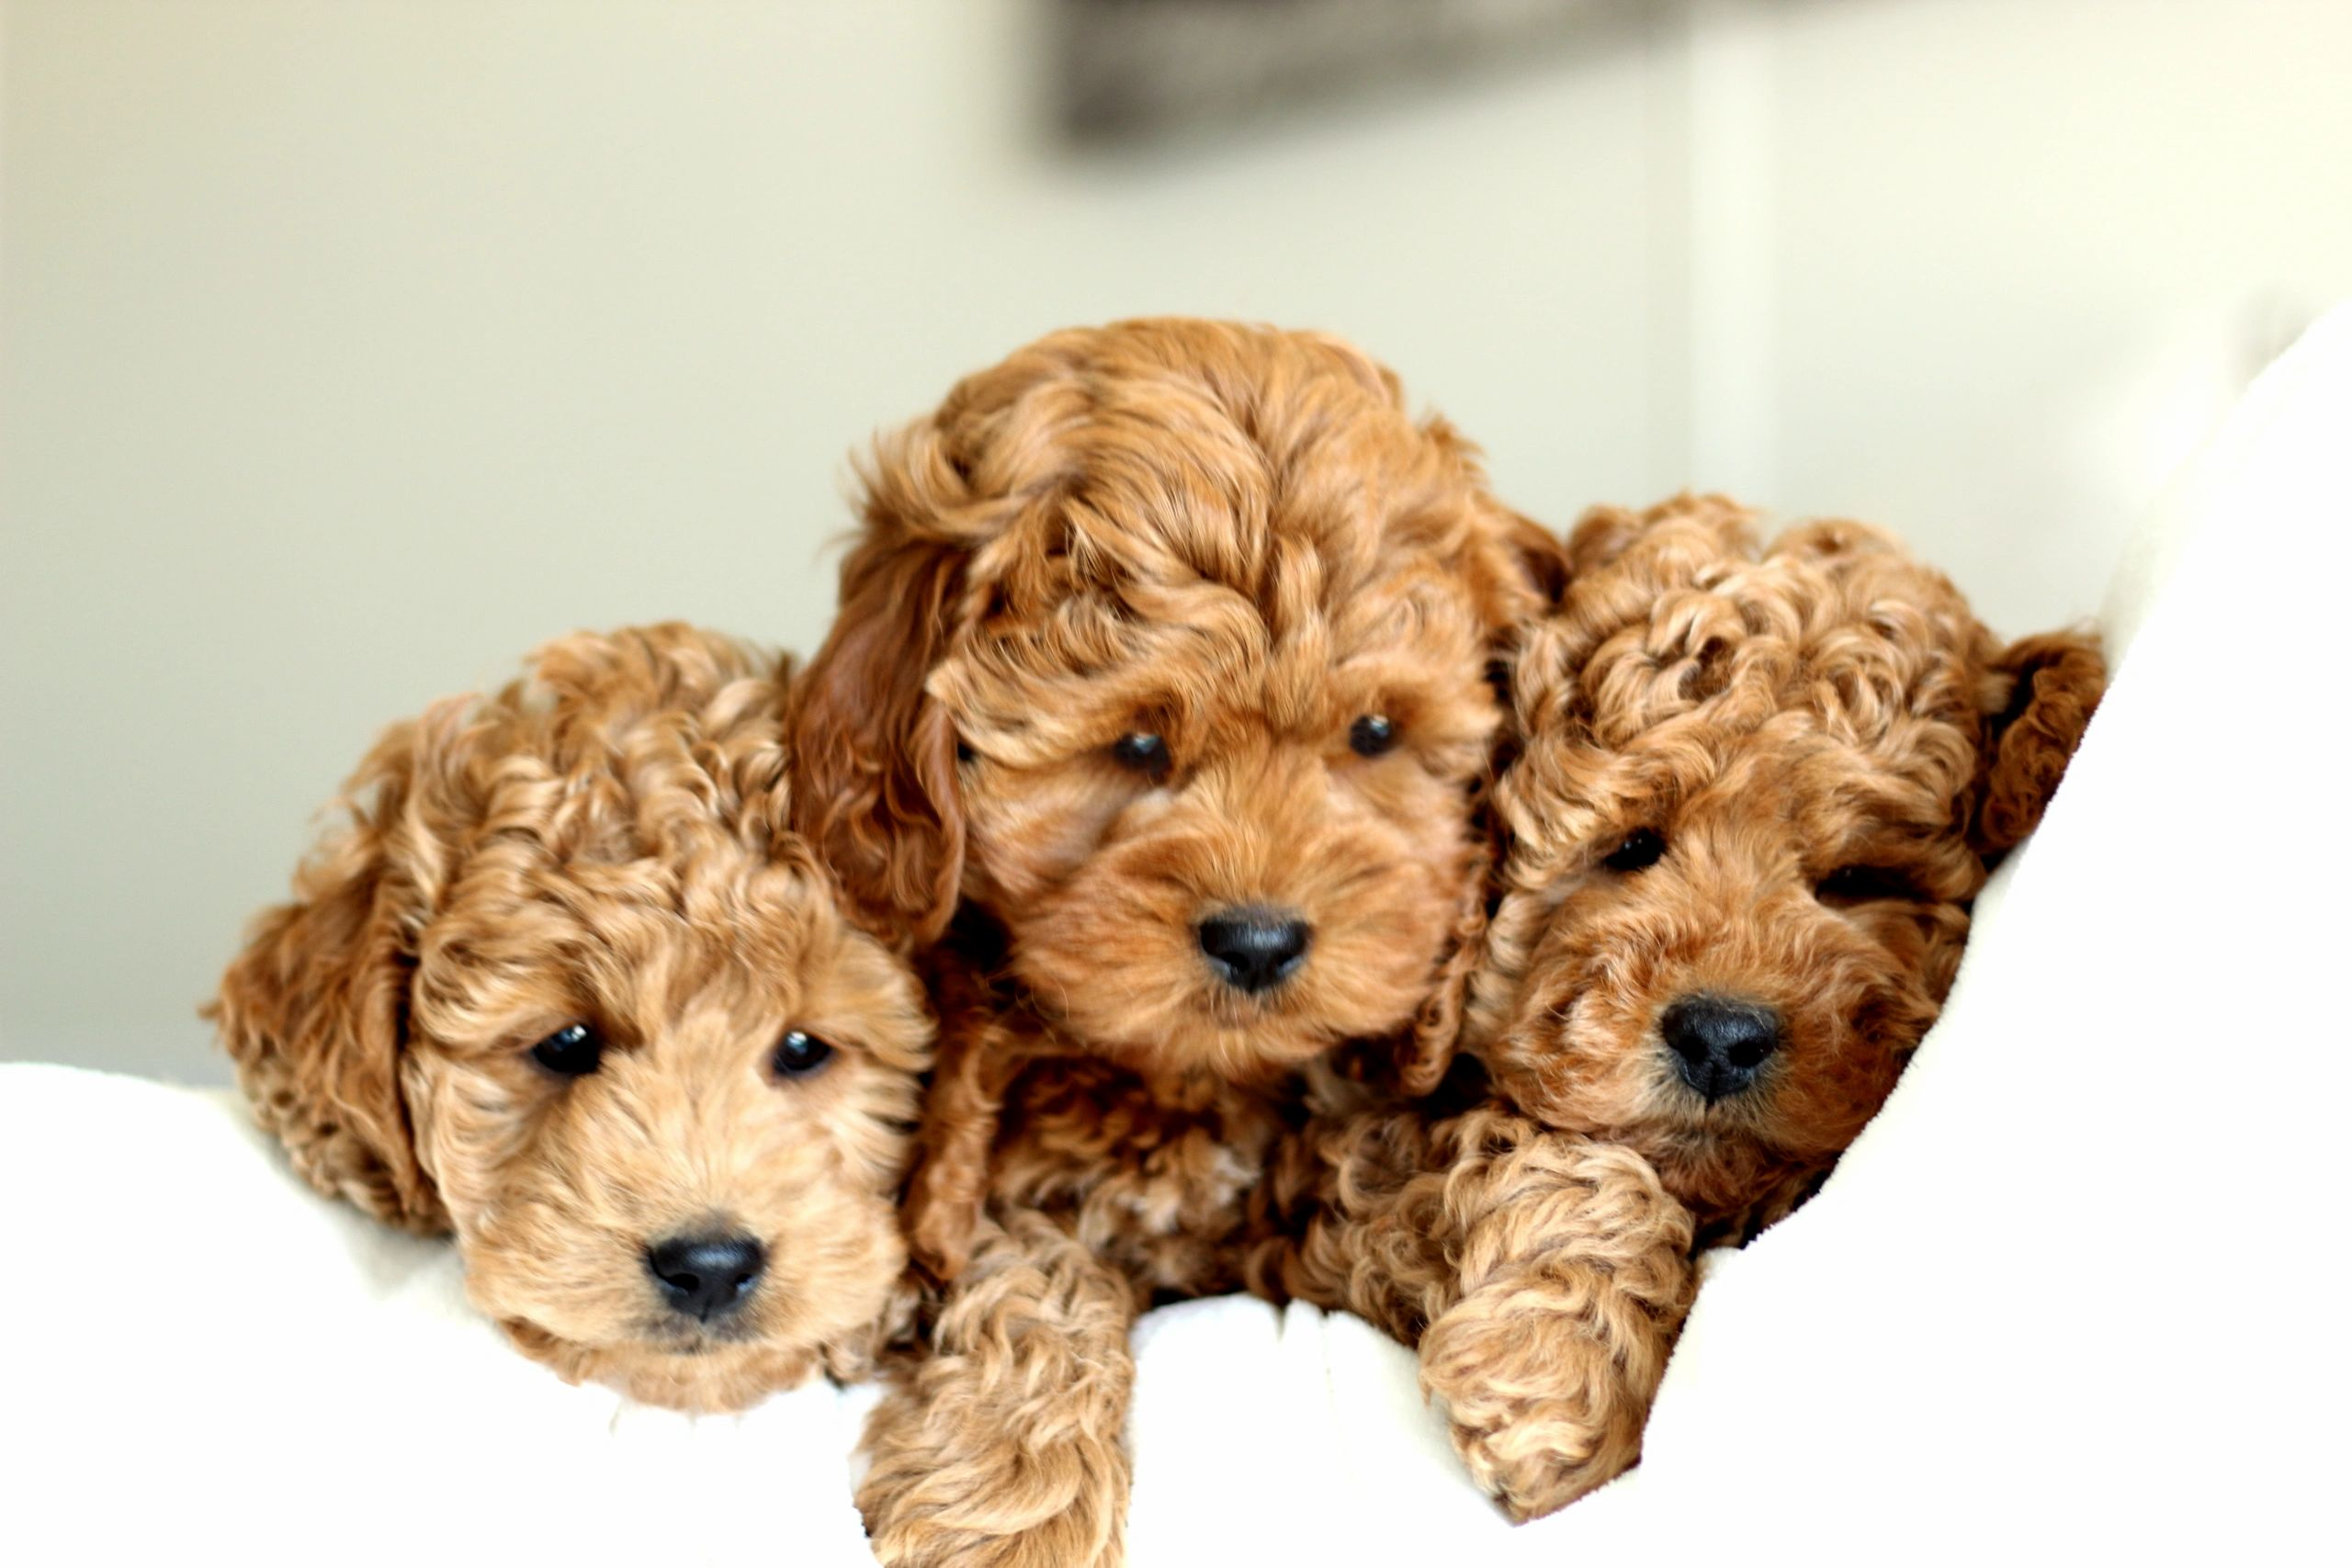 Golden River Puppies Miniature Goldendoodle Puppies For Sale